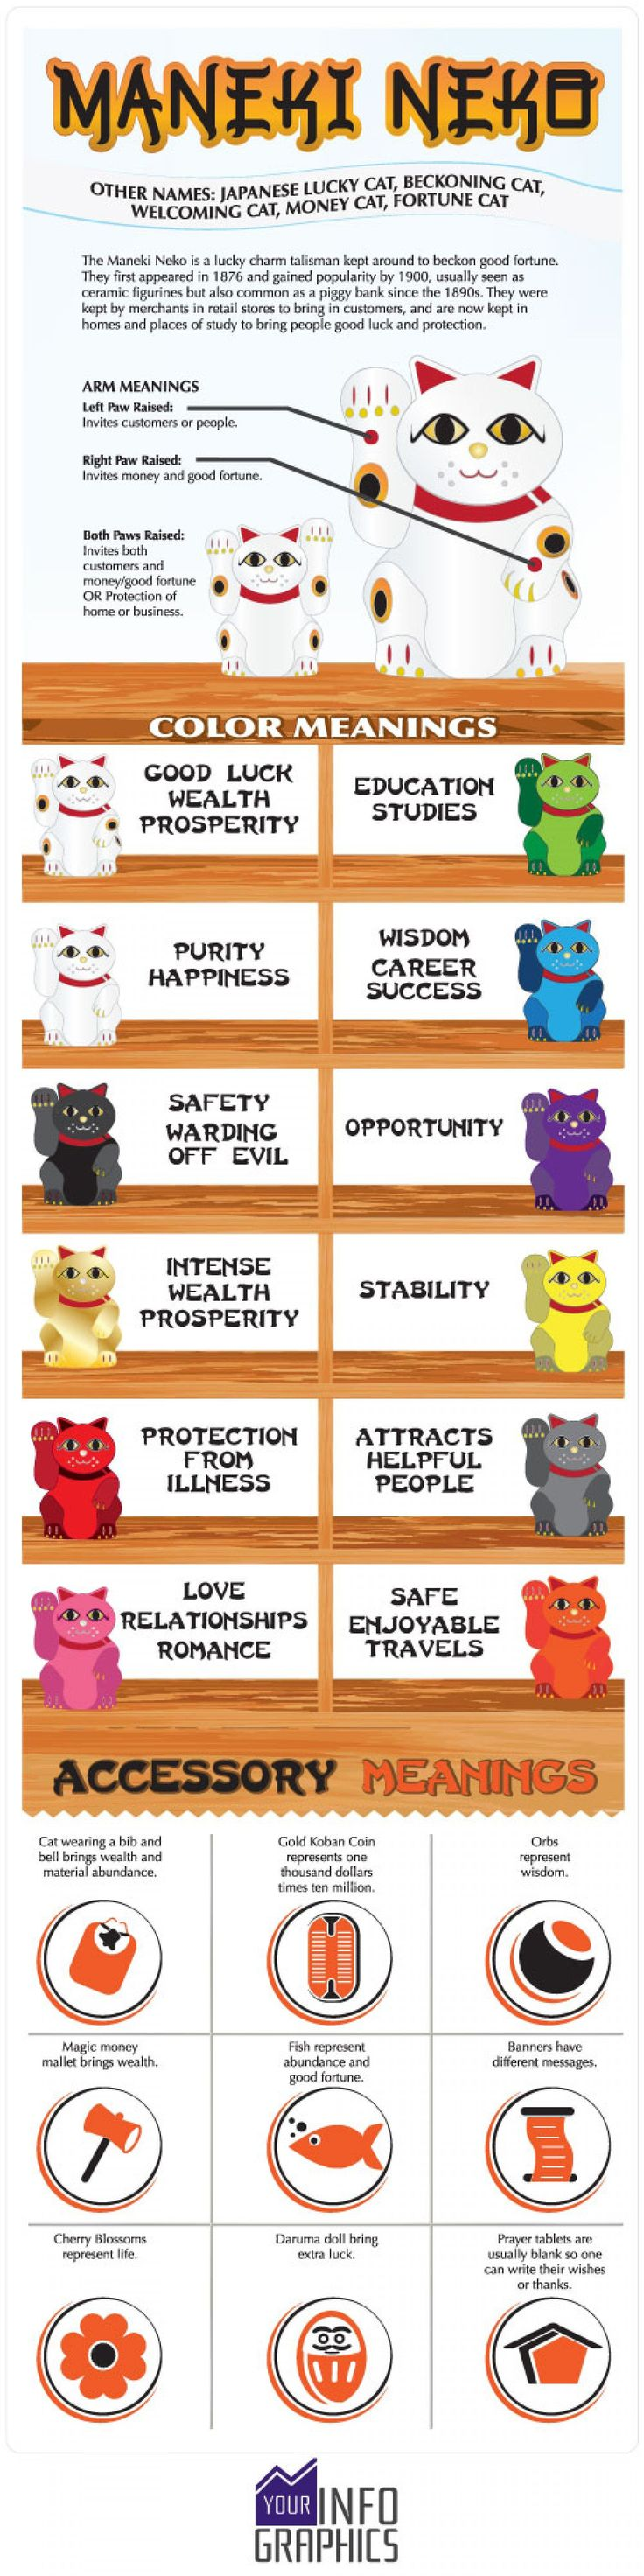 Maneki Neko Lucky Cat Infographic #Infographic #LuckyCatInfographic #LuckyCat…